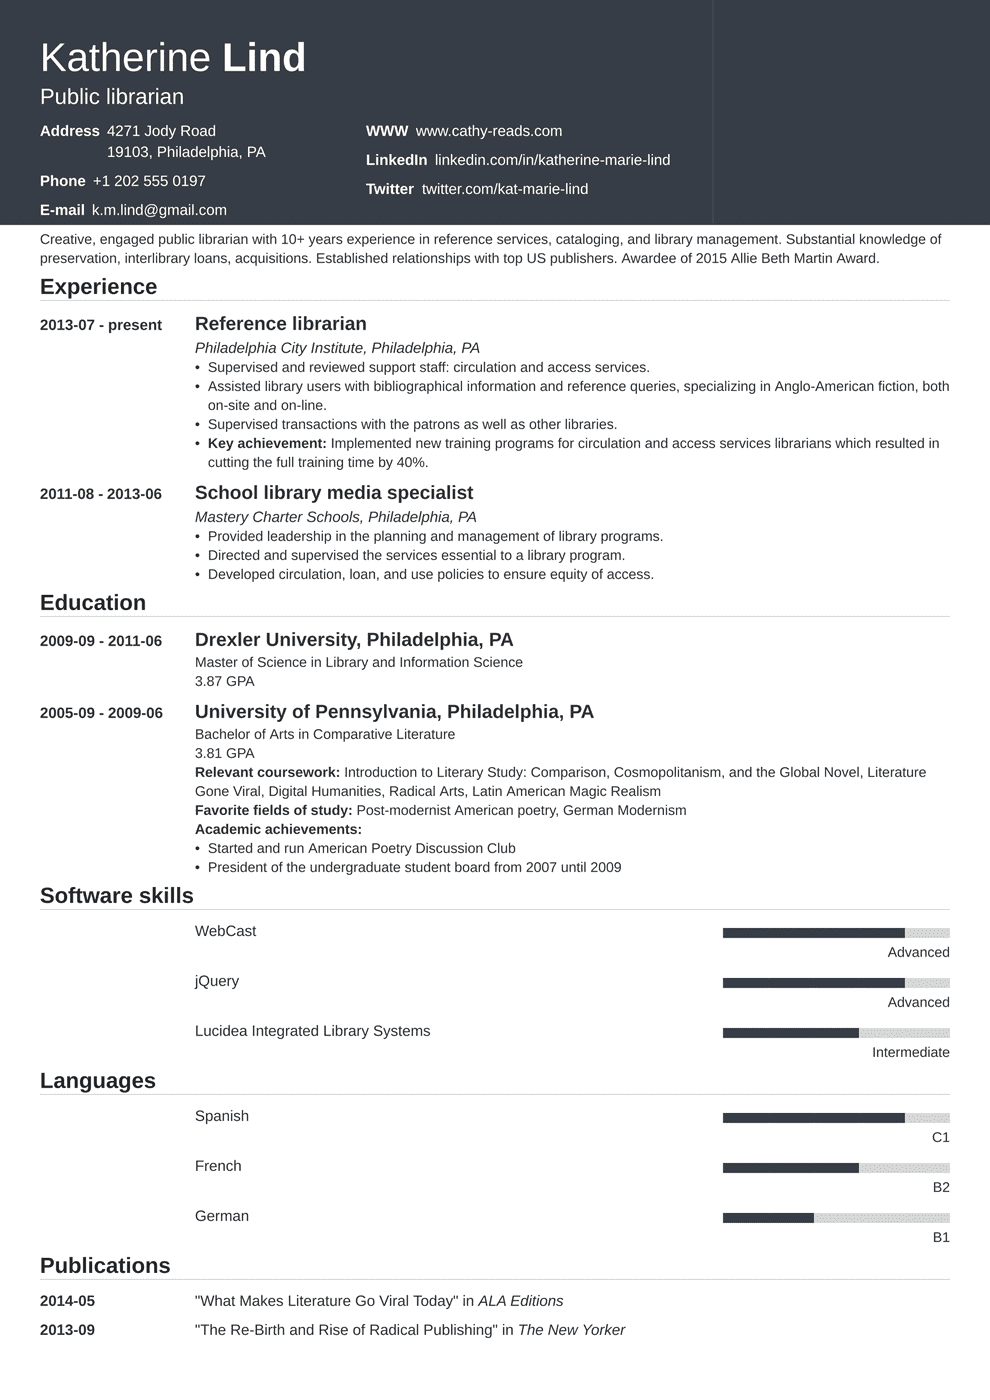 Librarian Resume: Sample & Complete Guide [20+ Examples]